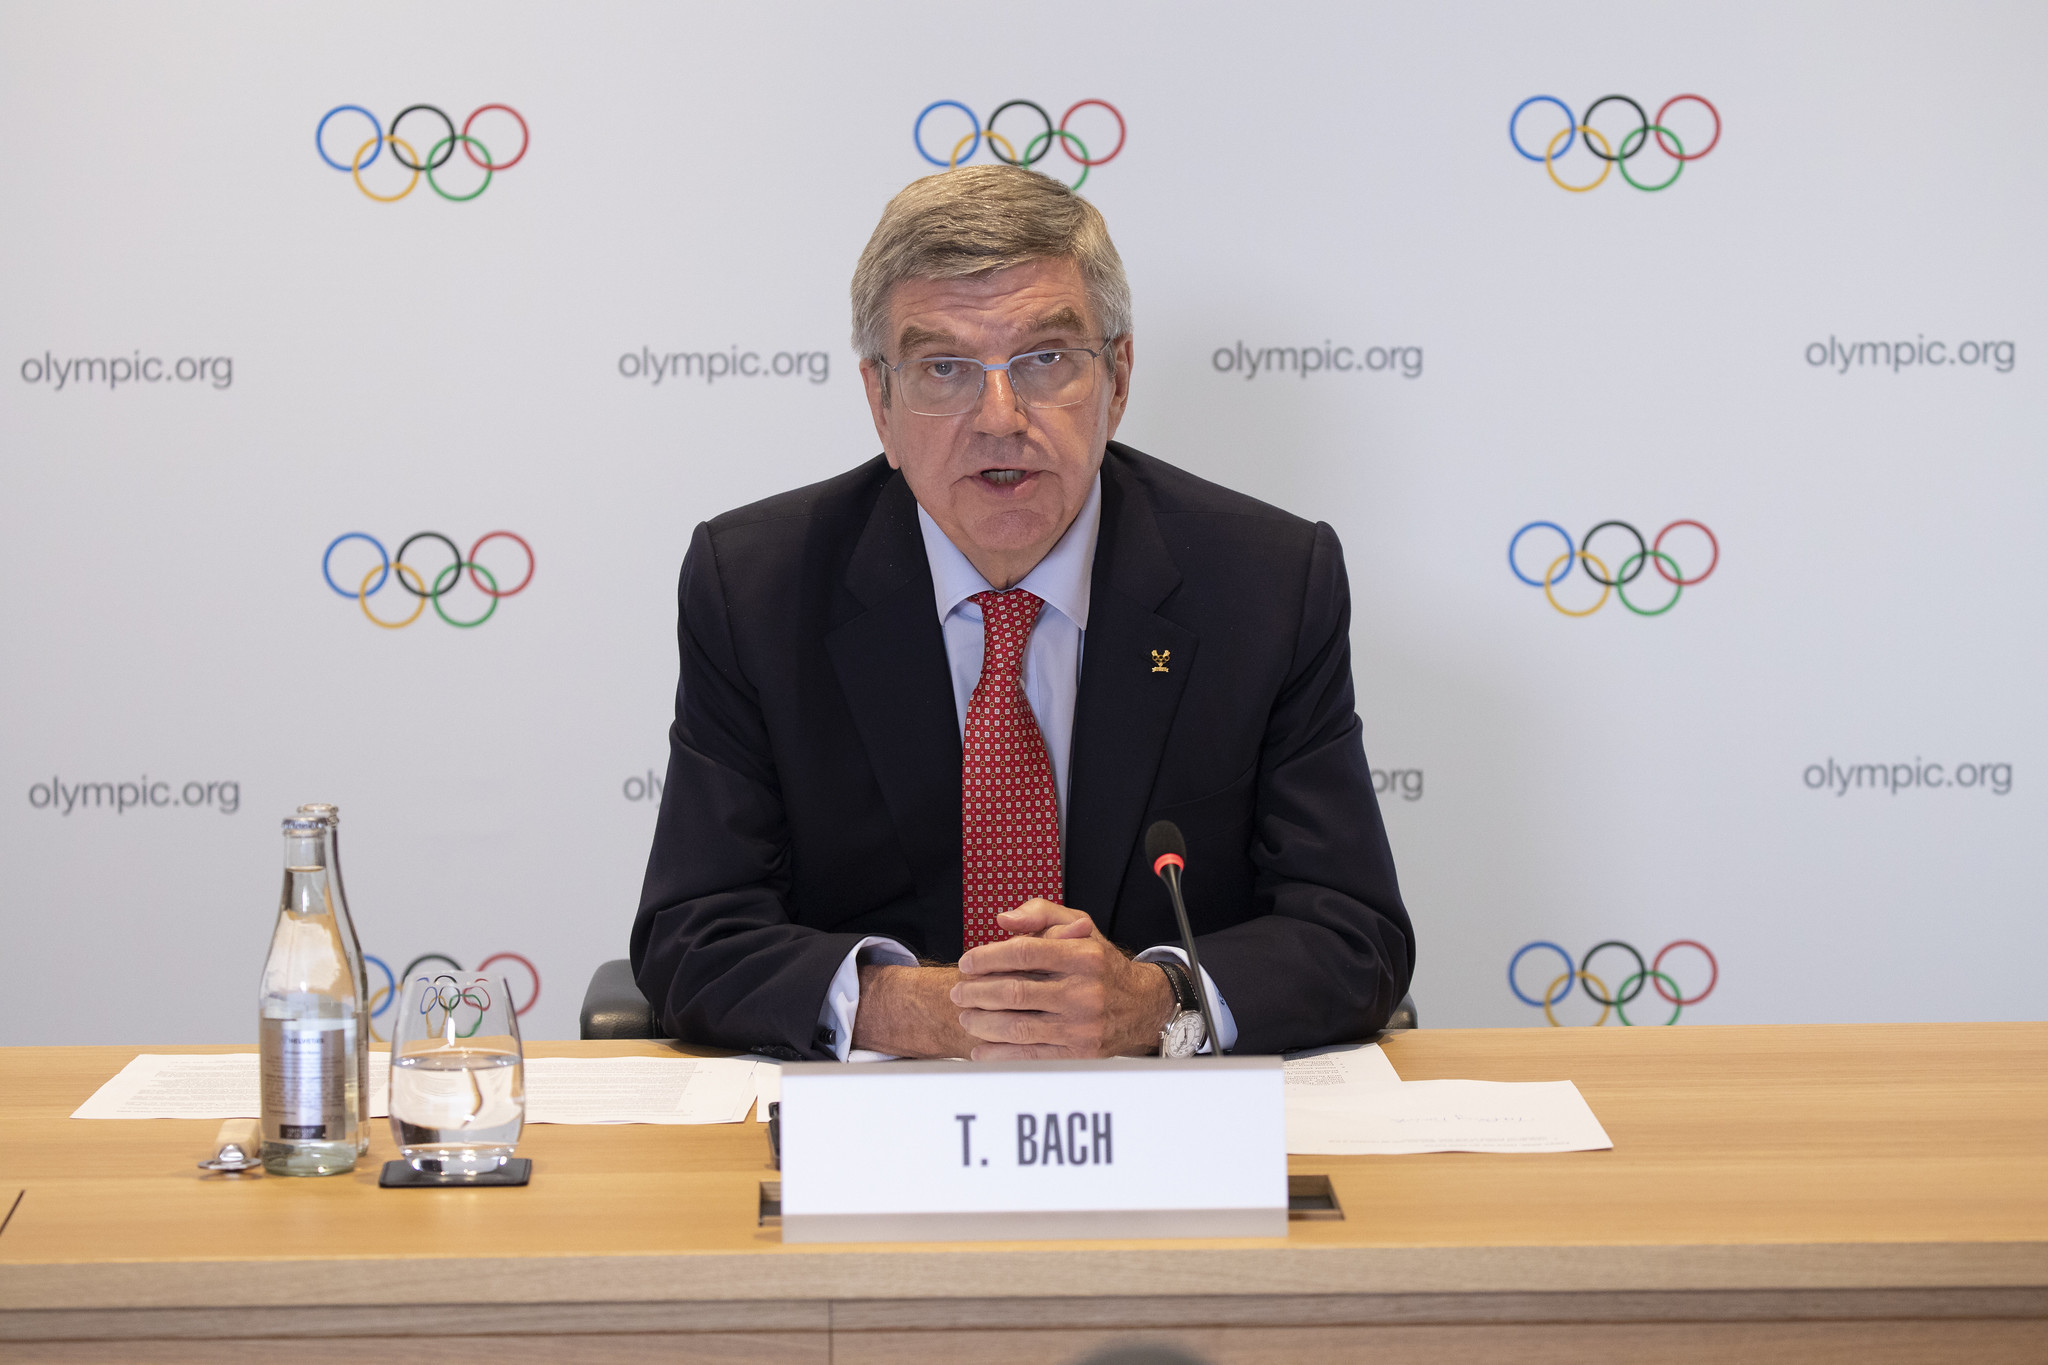 IOC President Thomas Bach confirmed he will seek a second term during the virtual IOC Session last week ©IOC